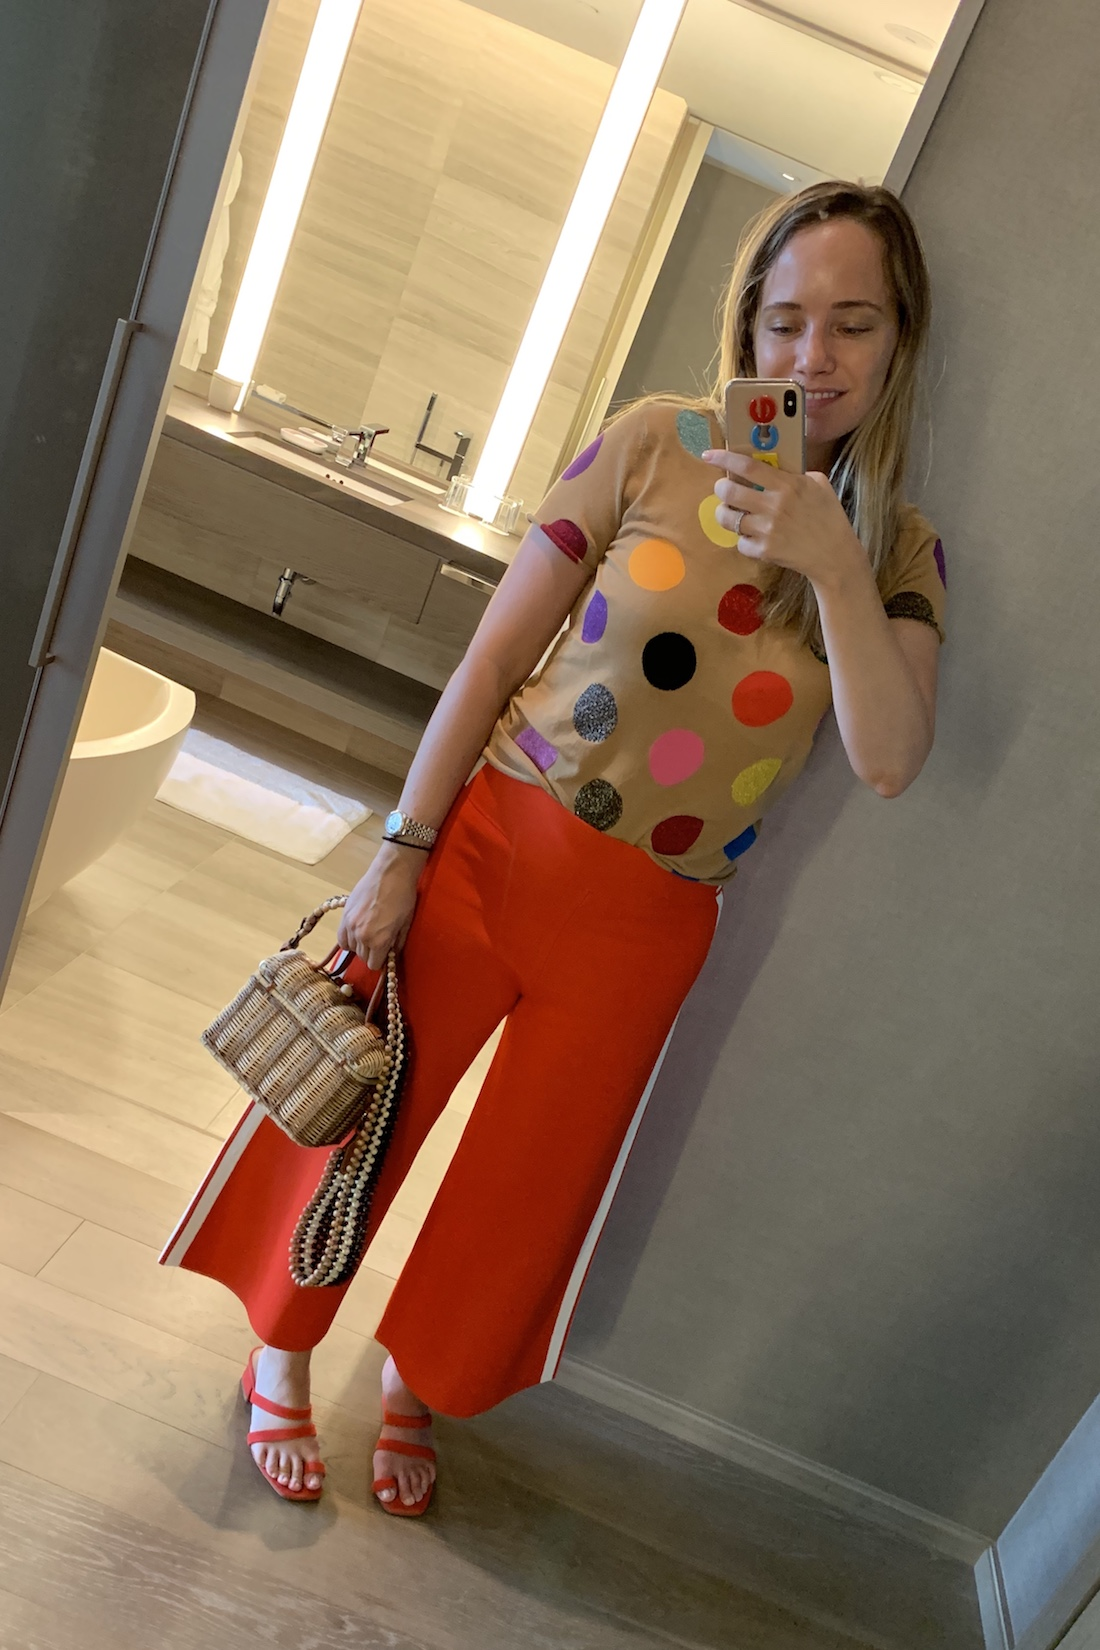 I wore an outfit of polka dots and colors.